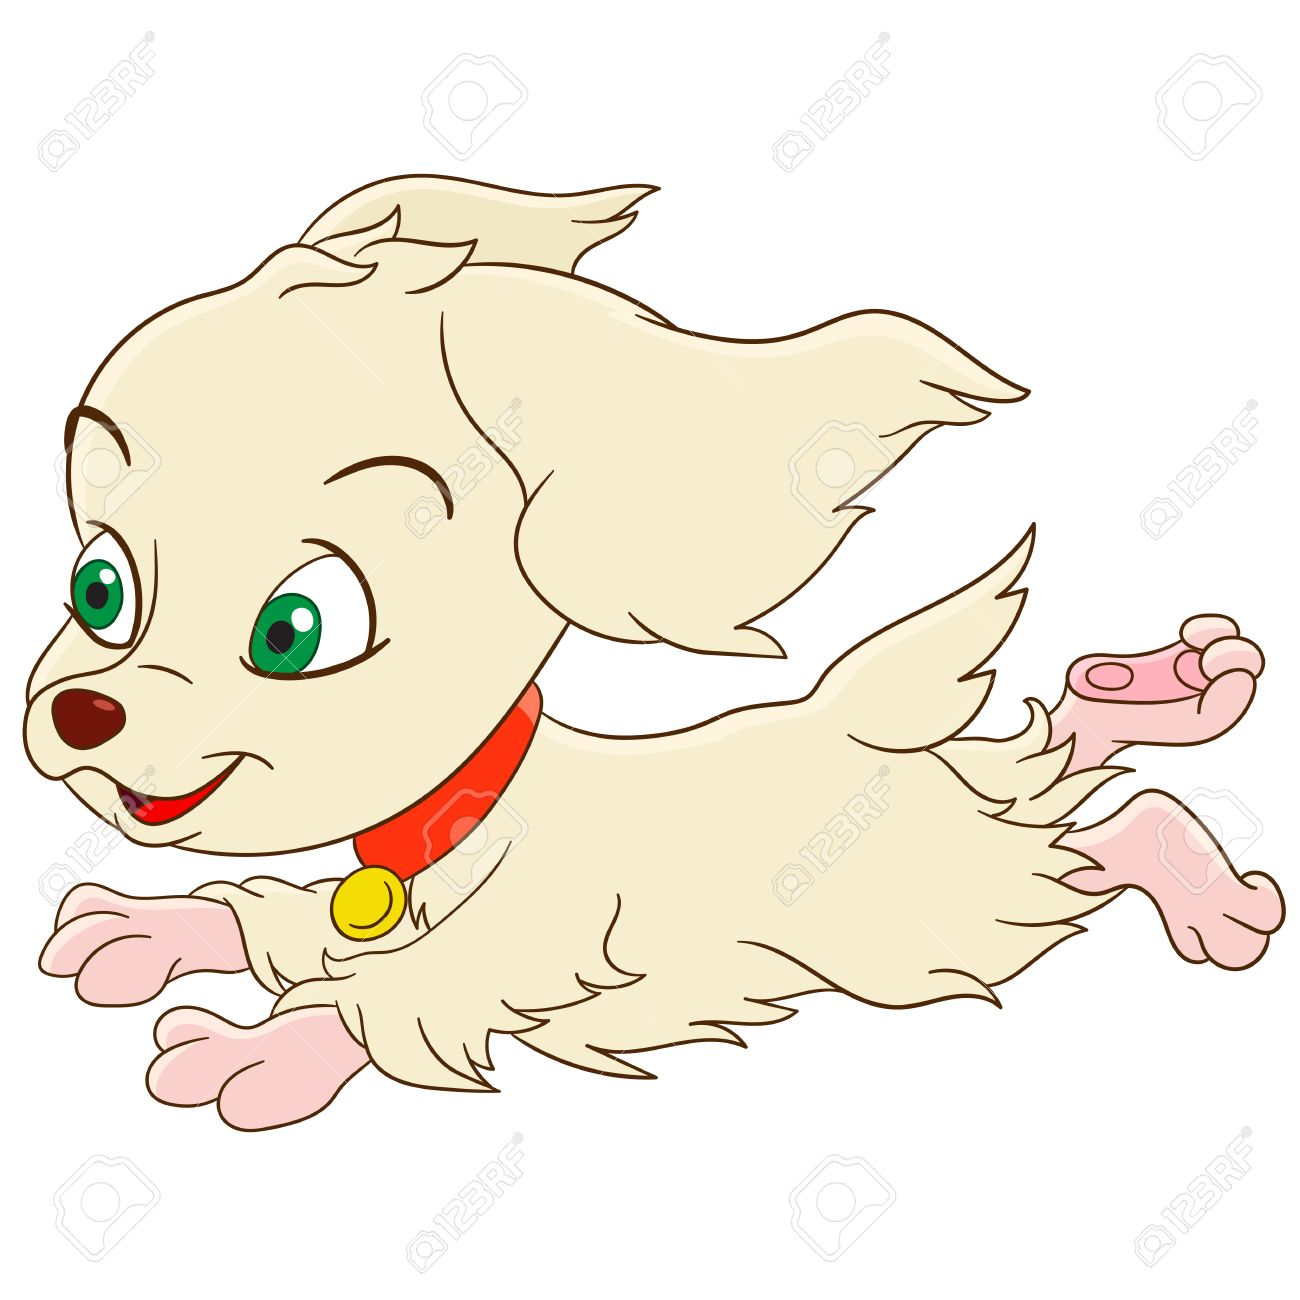 cute and happy cartoon girlish spaniel dog is quickly and lively